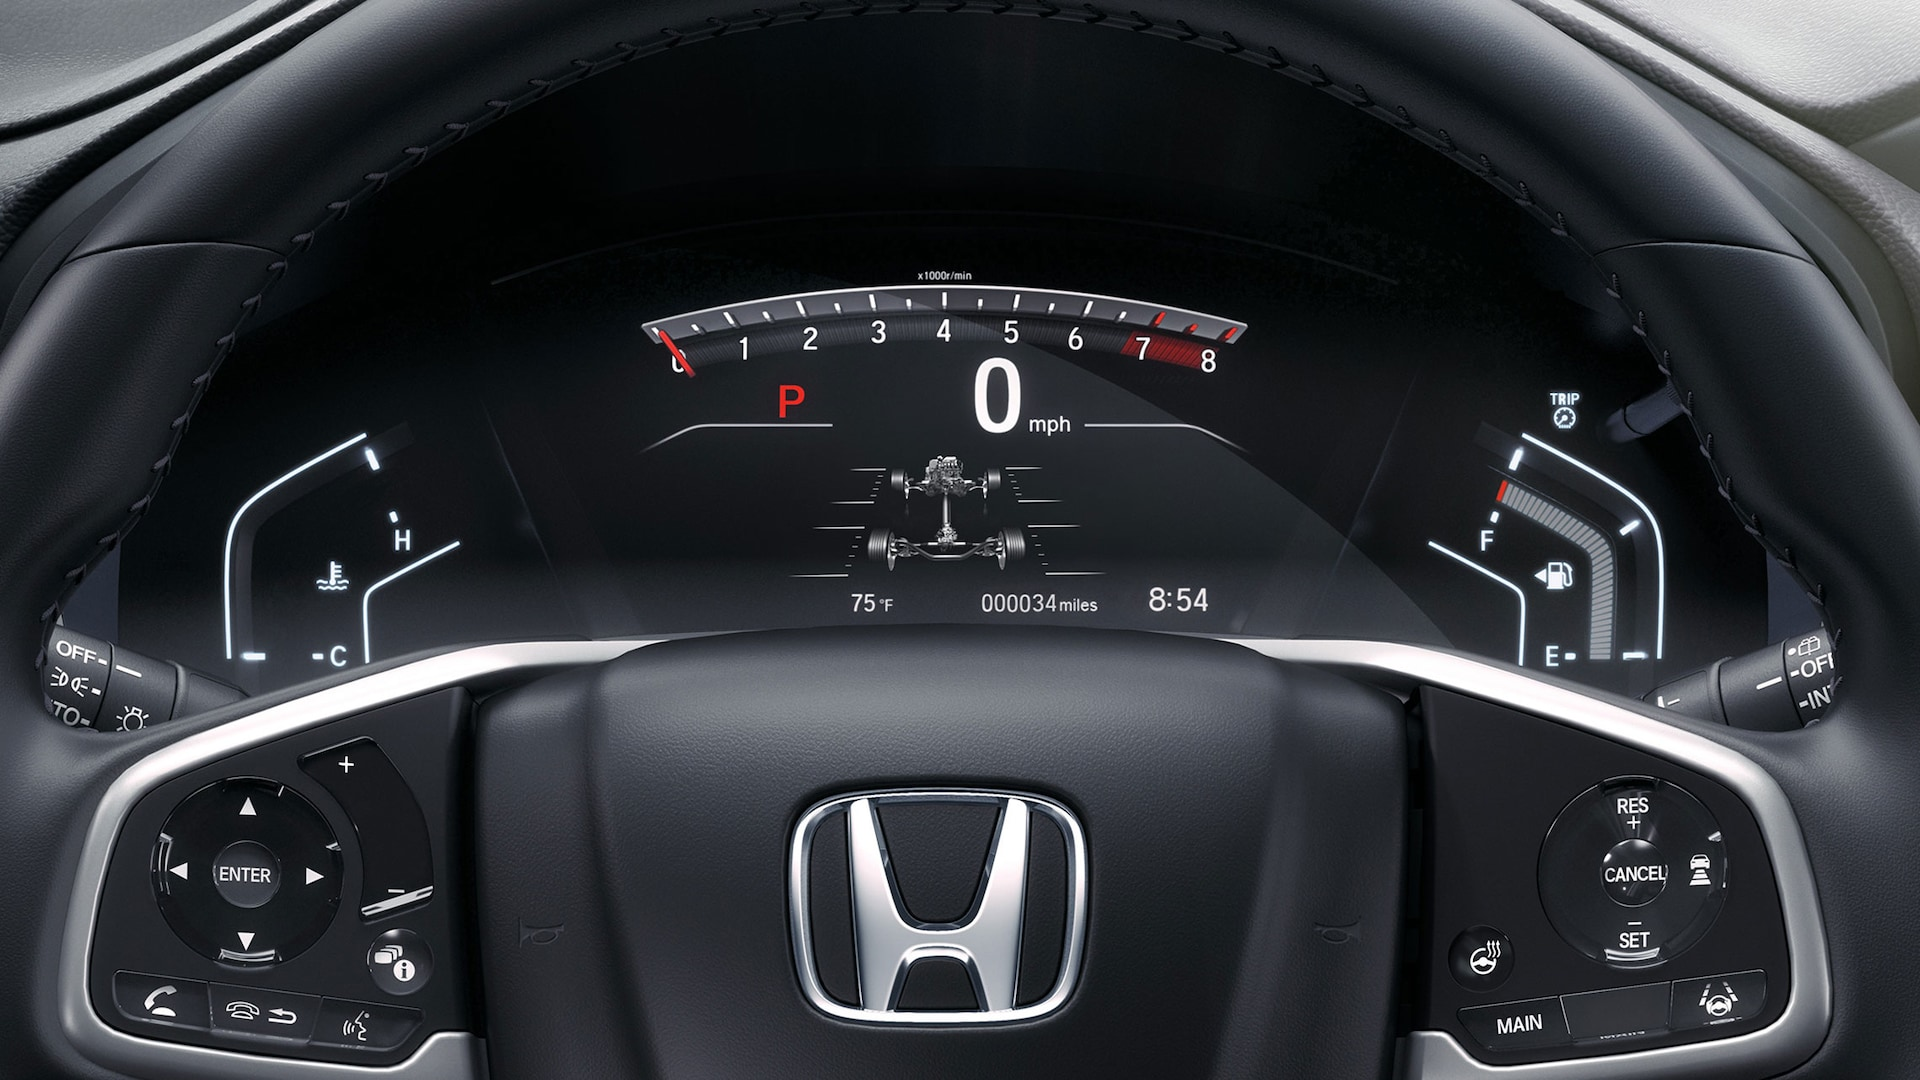 Instrument panel detail in the 2020 Honda CR-V Touring.